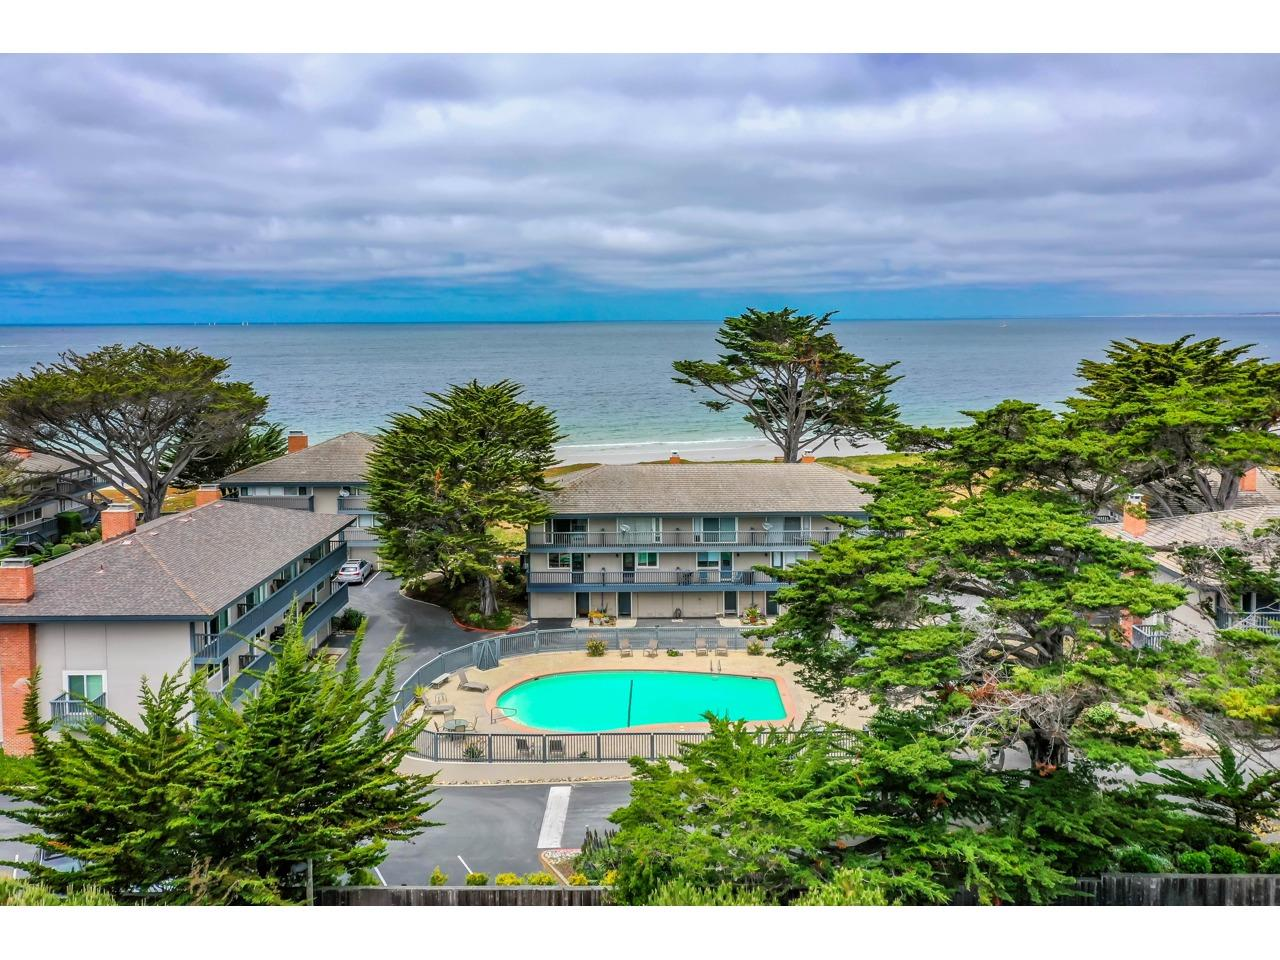 Property for sale at 41 La Playa ST 41, Monterey,  California 93940